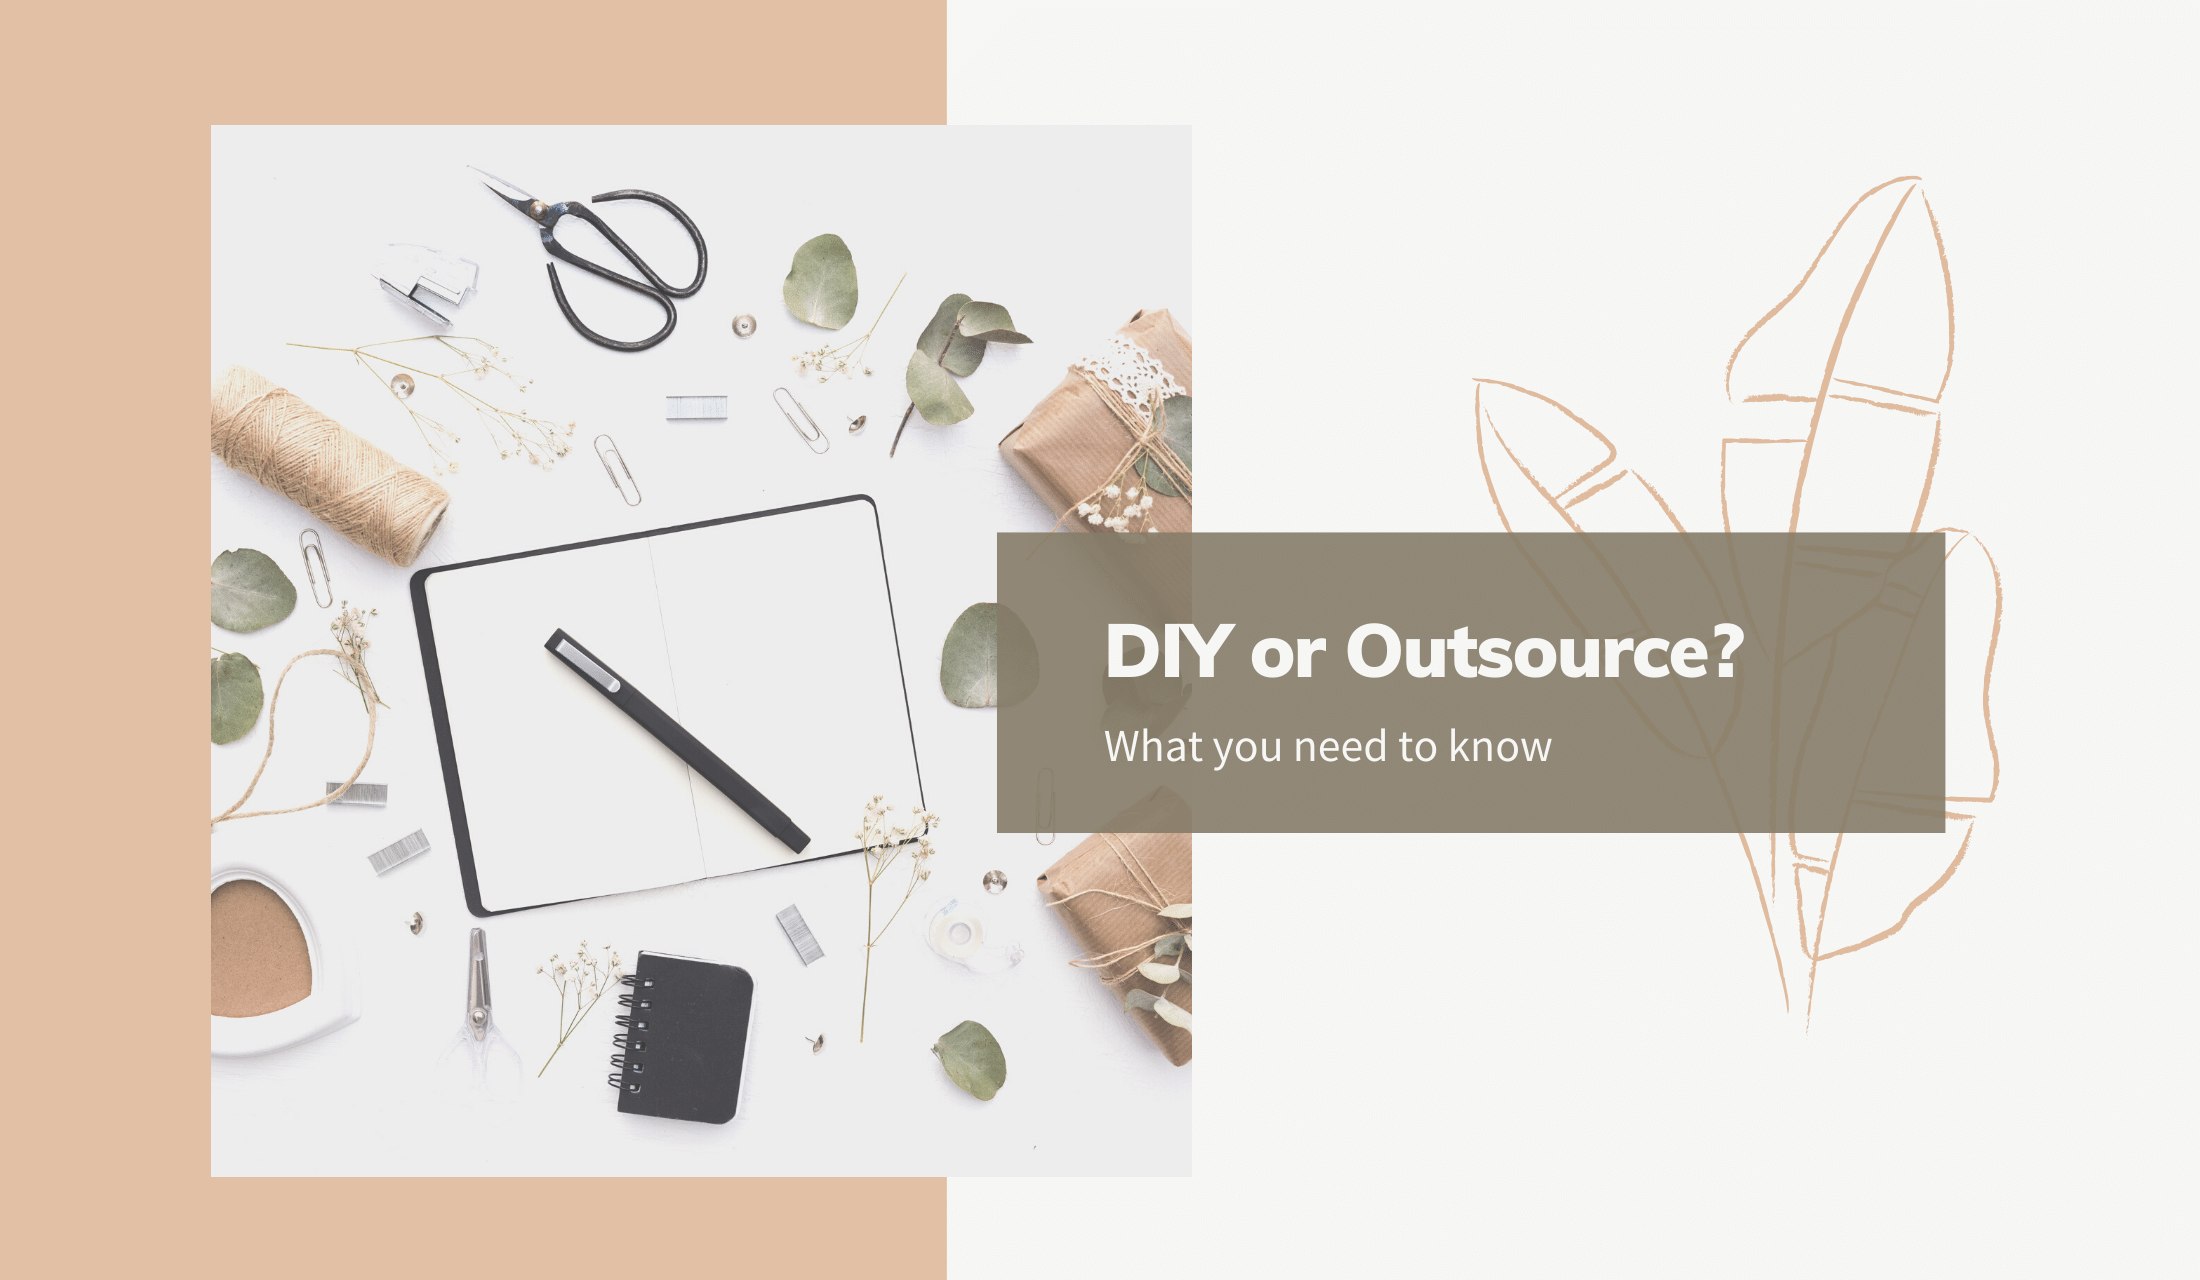 DIY or Outsource your marketing